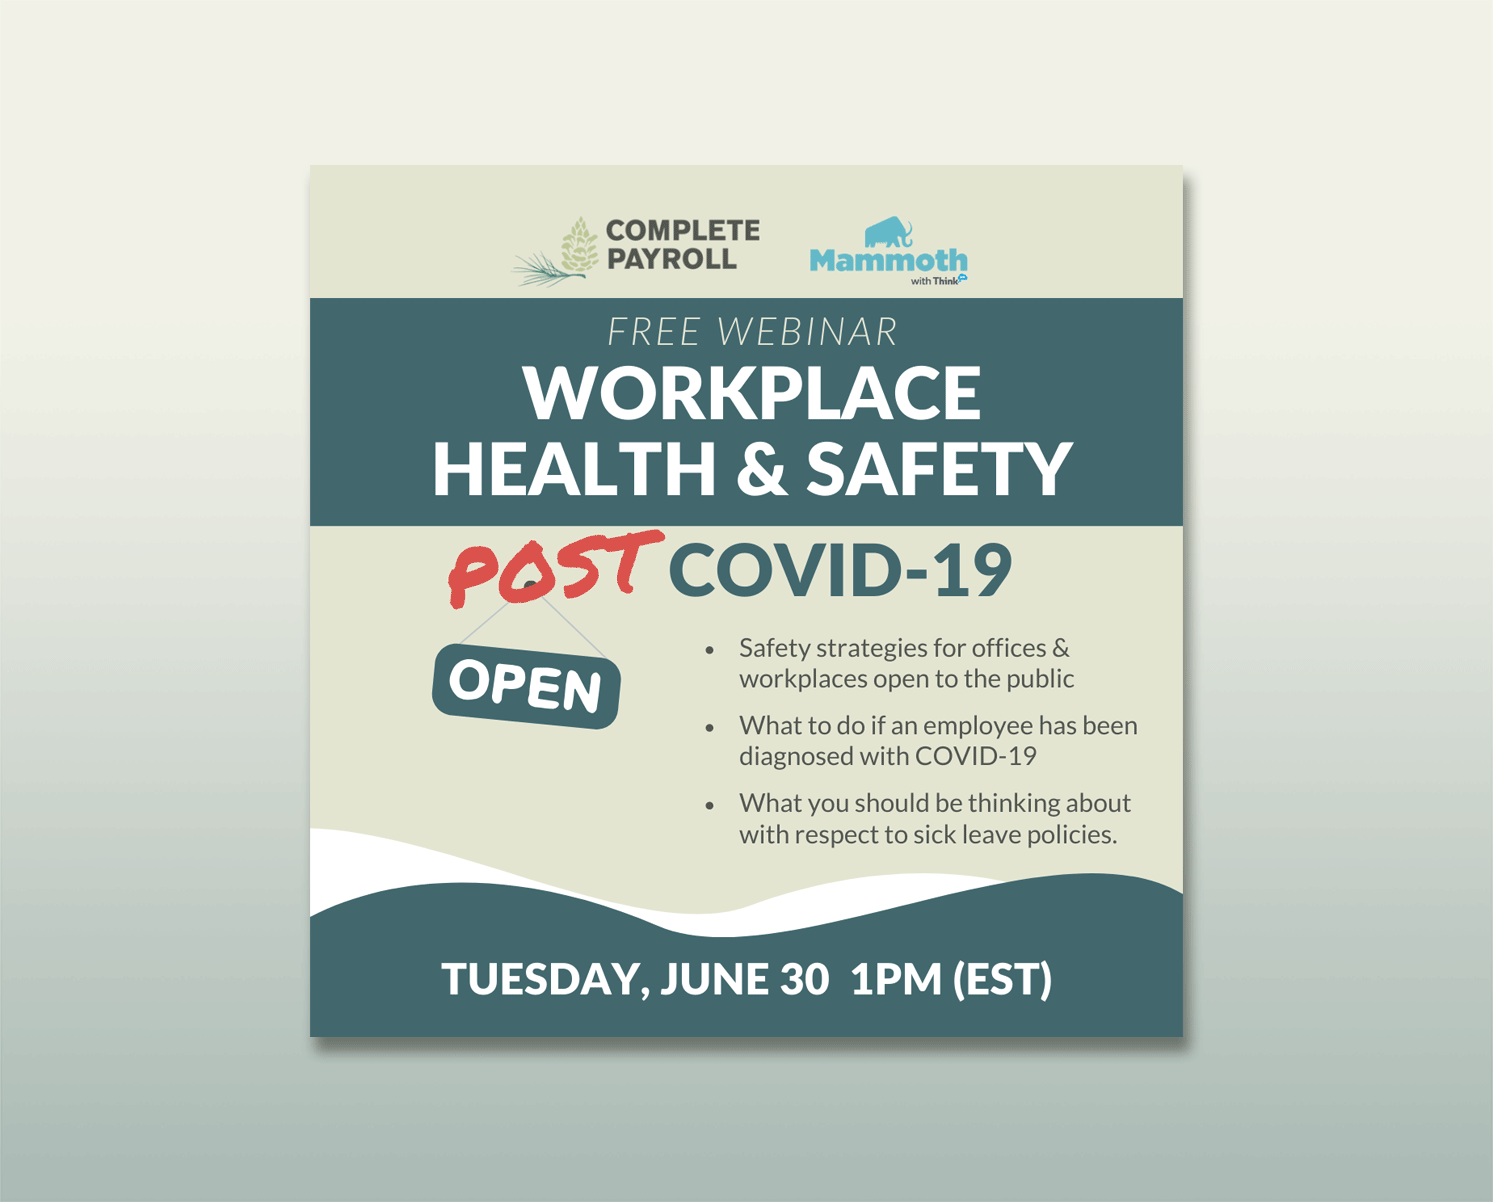 WEBINAR_2Col_Workplace-Health-Safety-Post-COVID